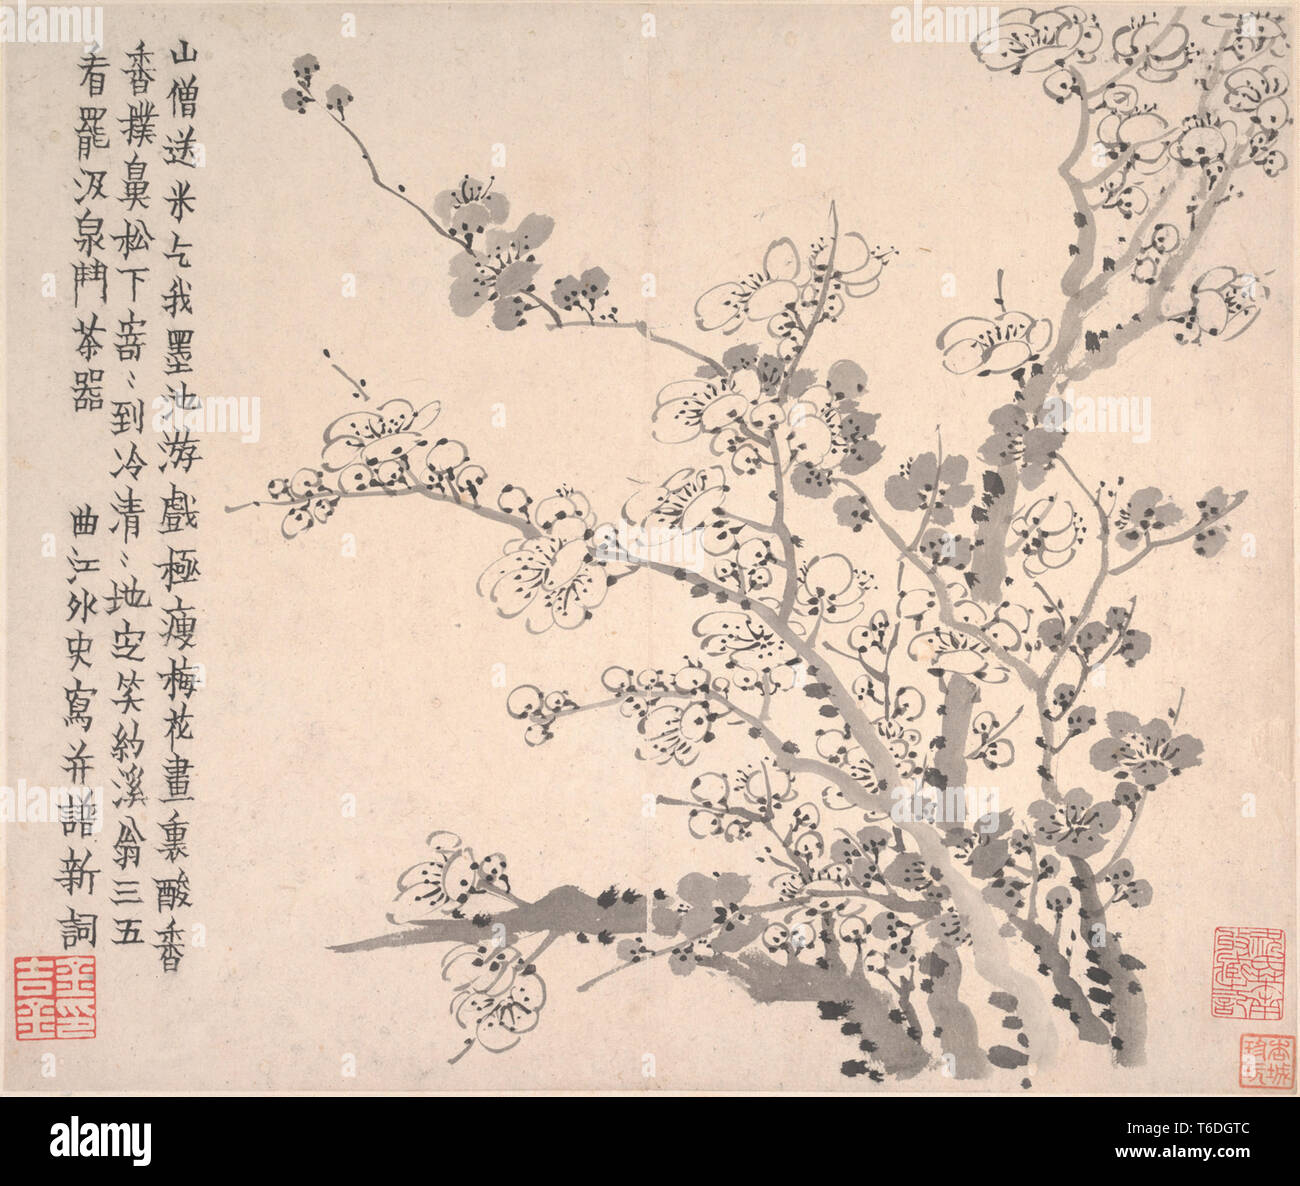 Qing Dynasty Jinnong Plum Blossoms album page 11 - Stock Image